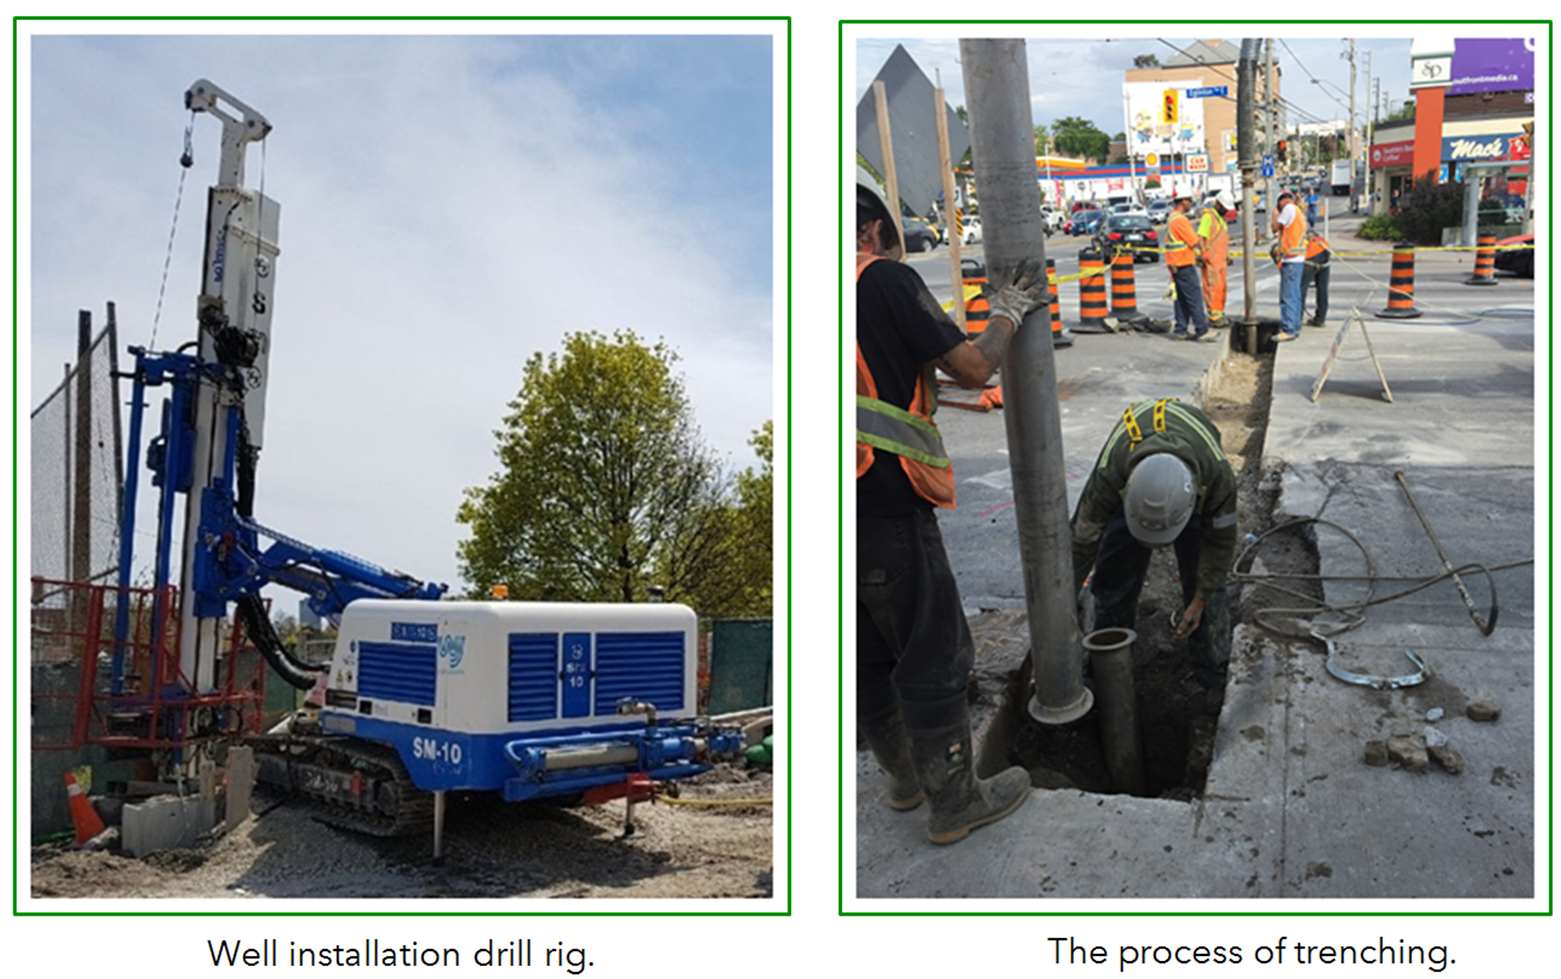 Photos of well installation drill rig and the process of trenching.